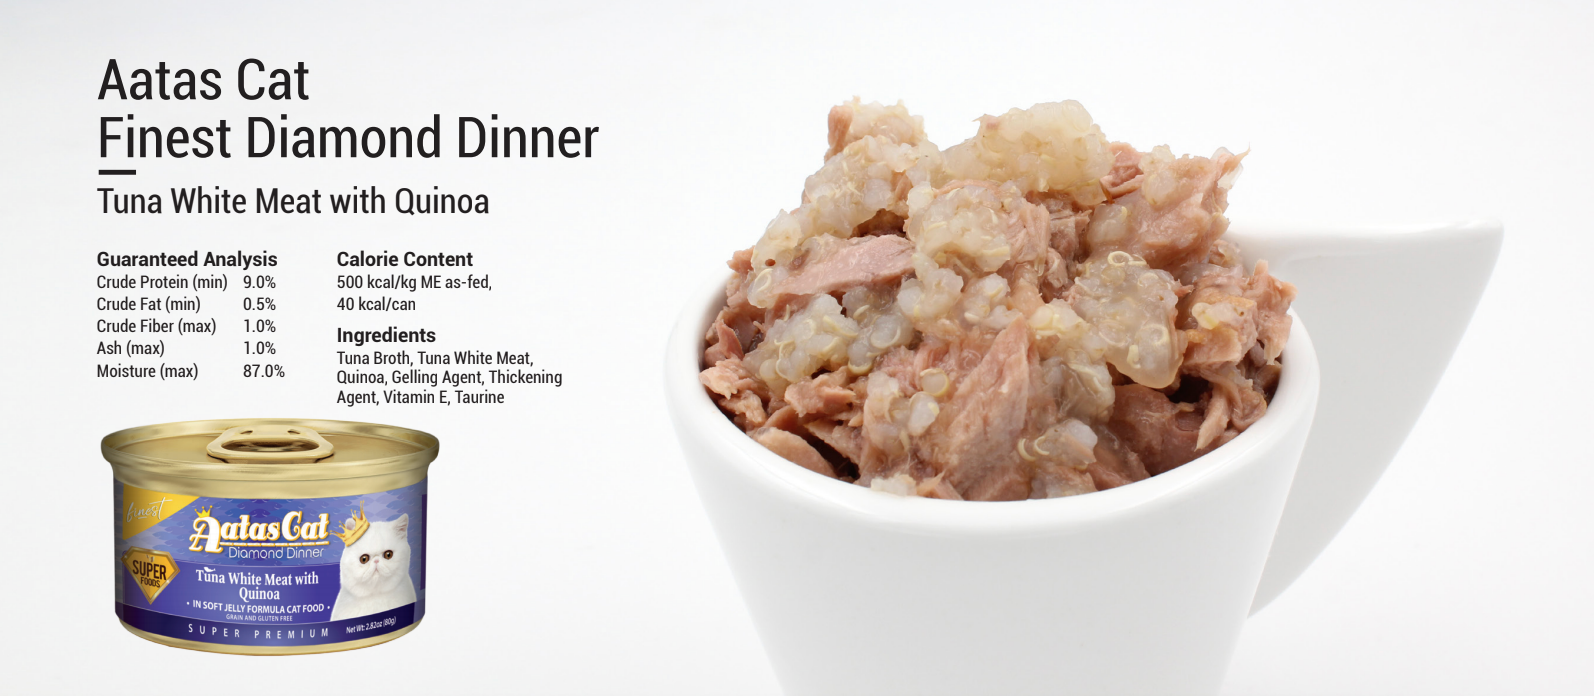 AATAS CAT Finest Diamond Dinner - Tuna White Meat with Quinoa 80g